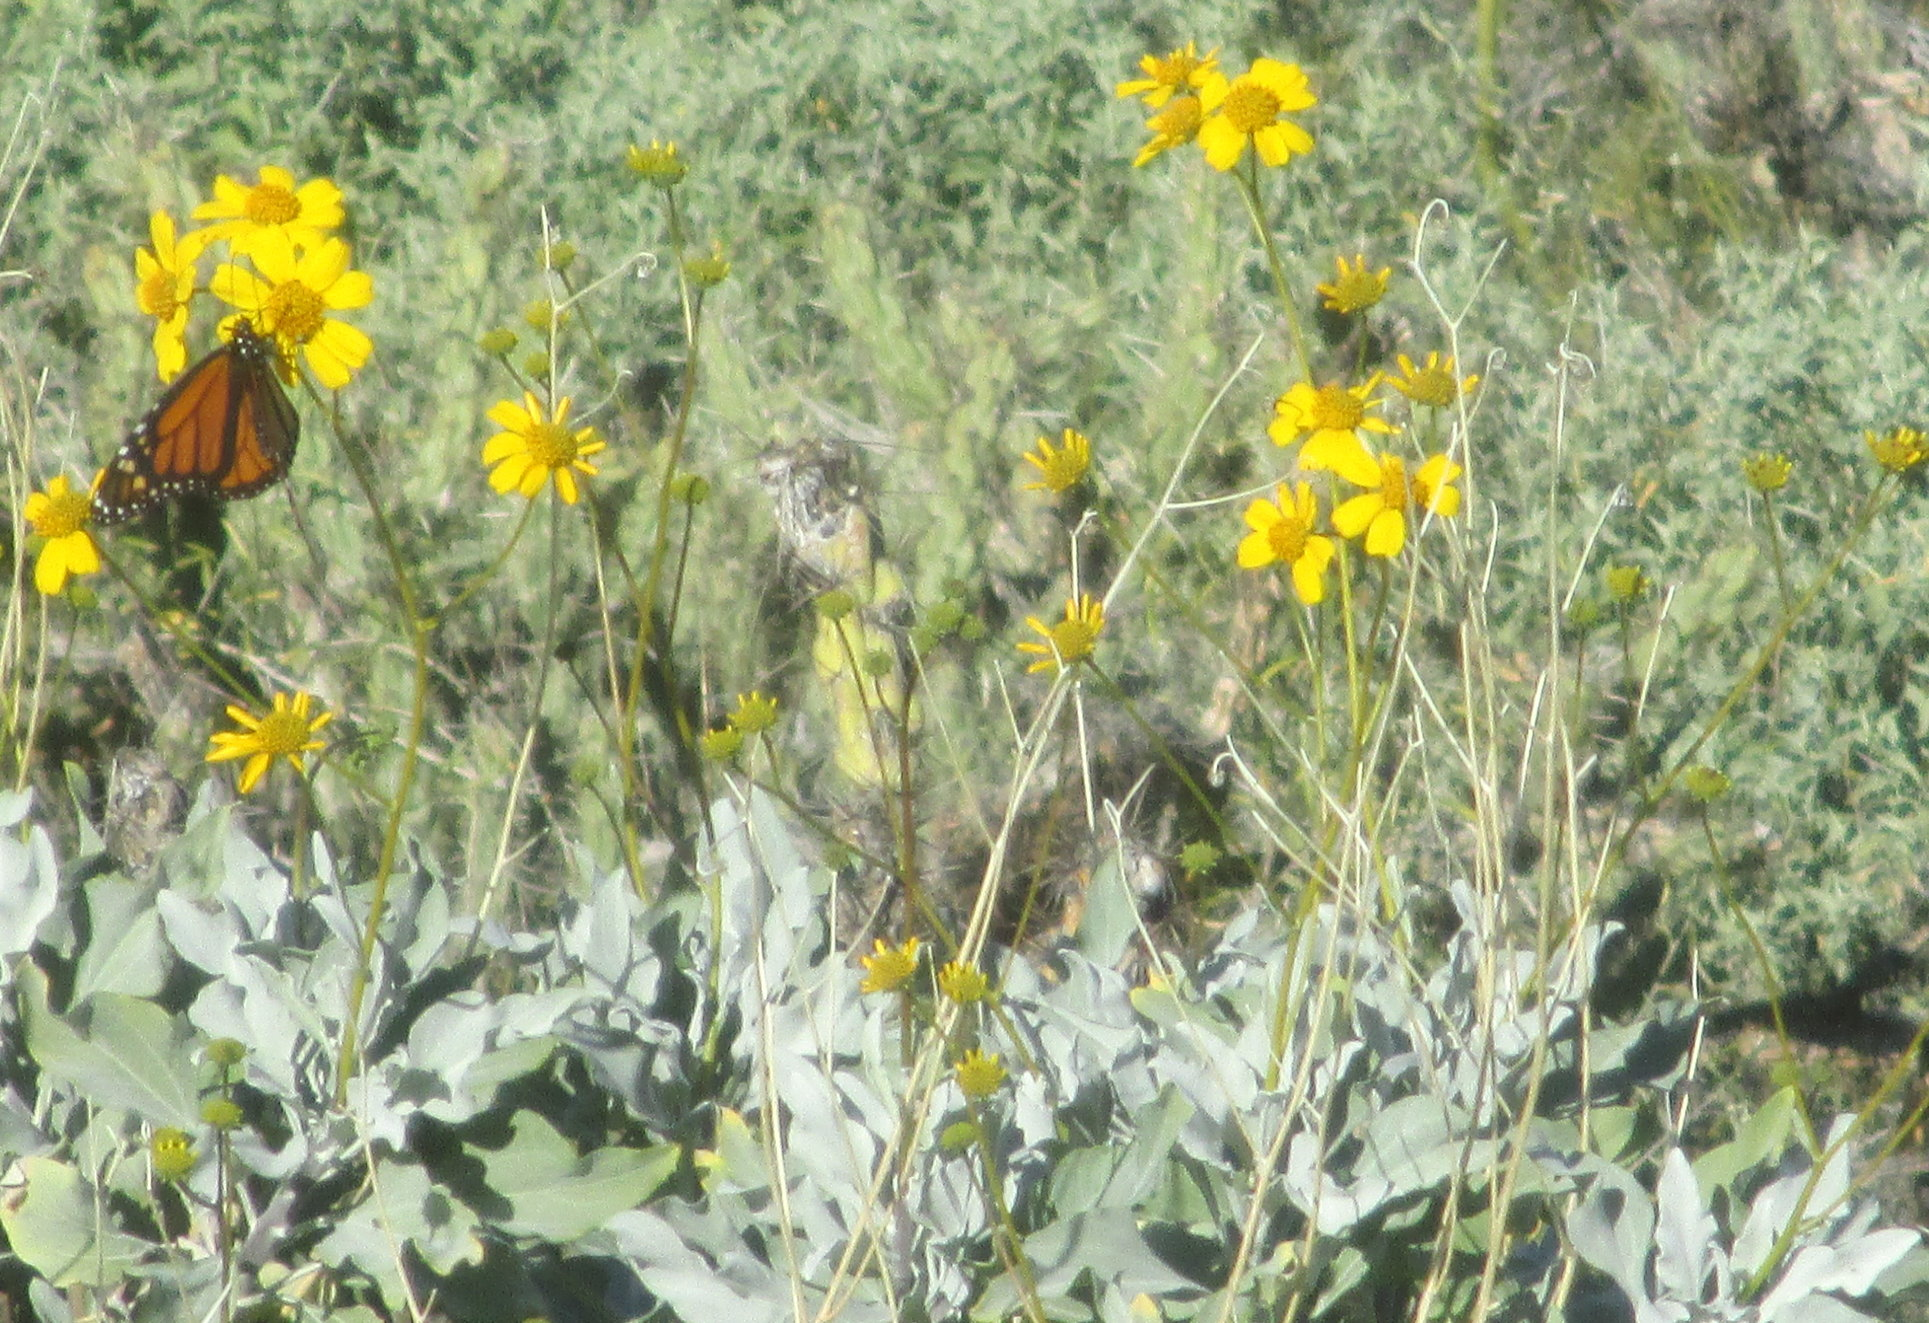 Monarch butterfly nectaring at a brittlebush